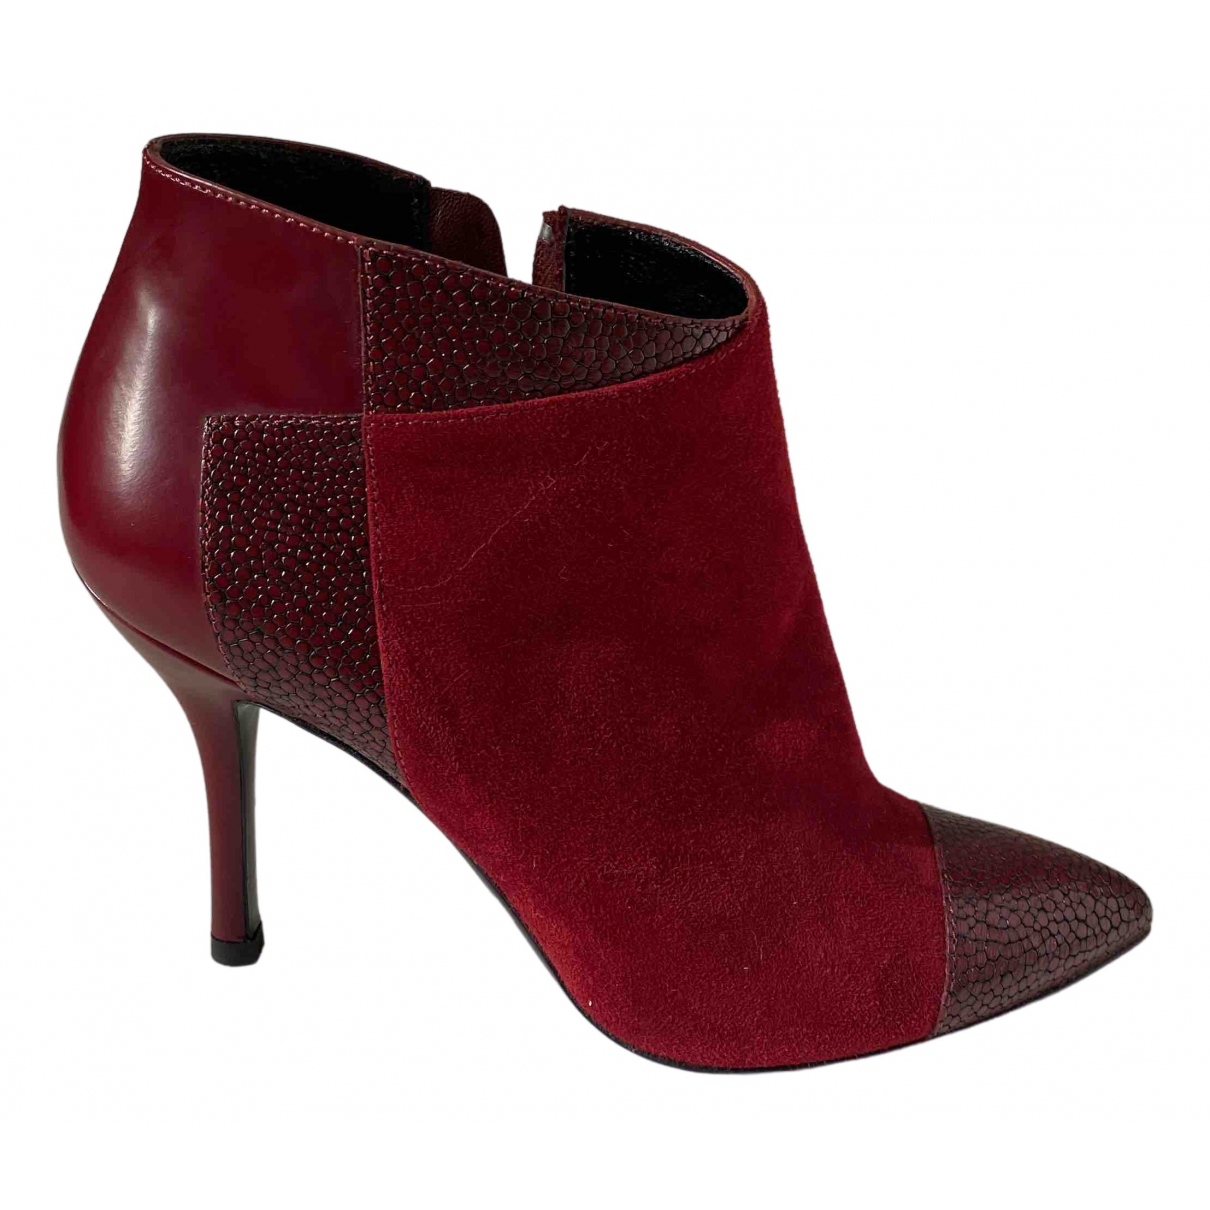 Longchamp \N Burgundy Suede Ankle boots for Women 37.5 EU